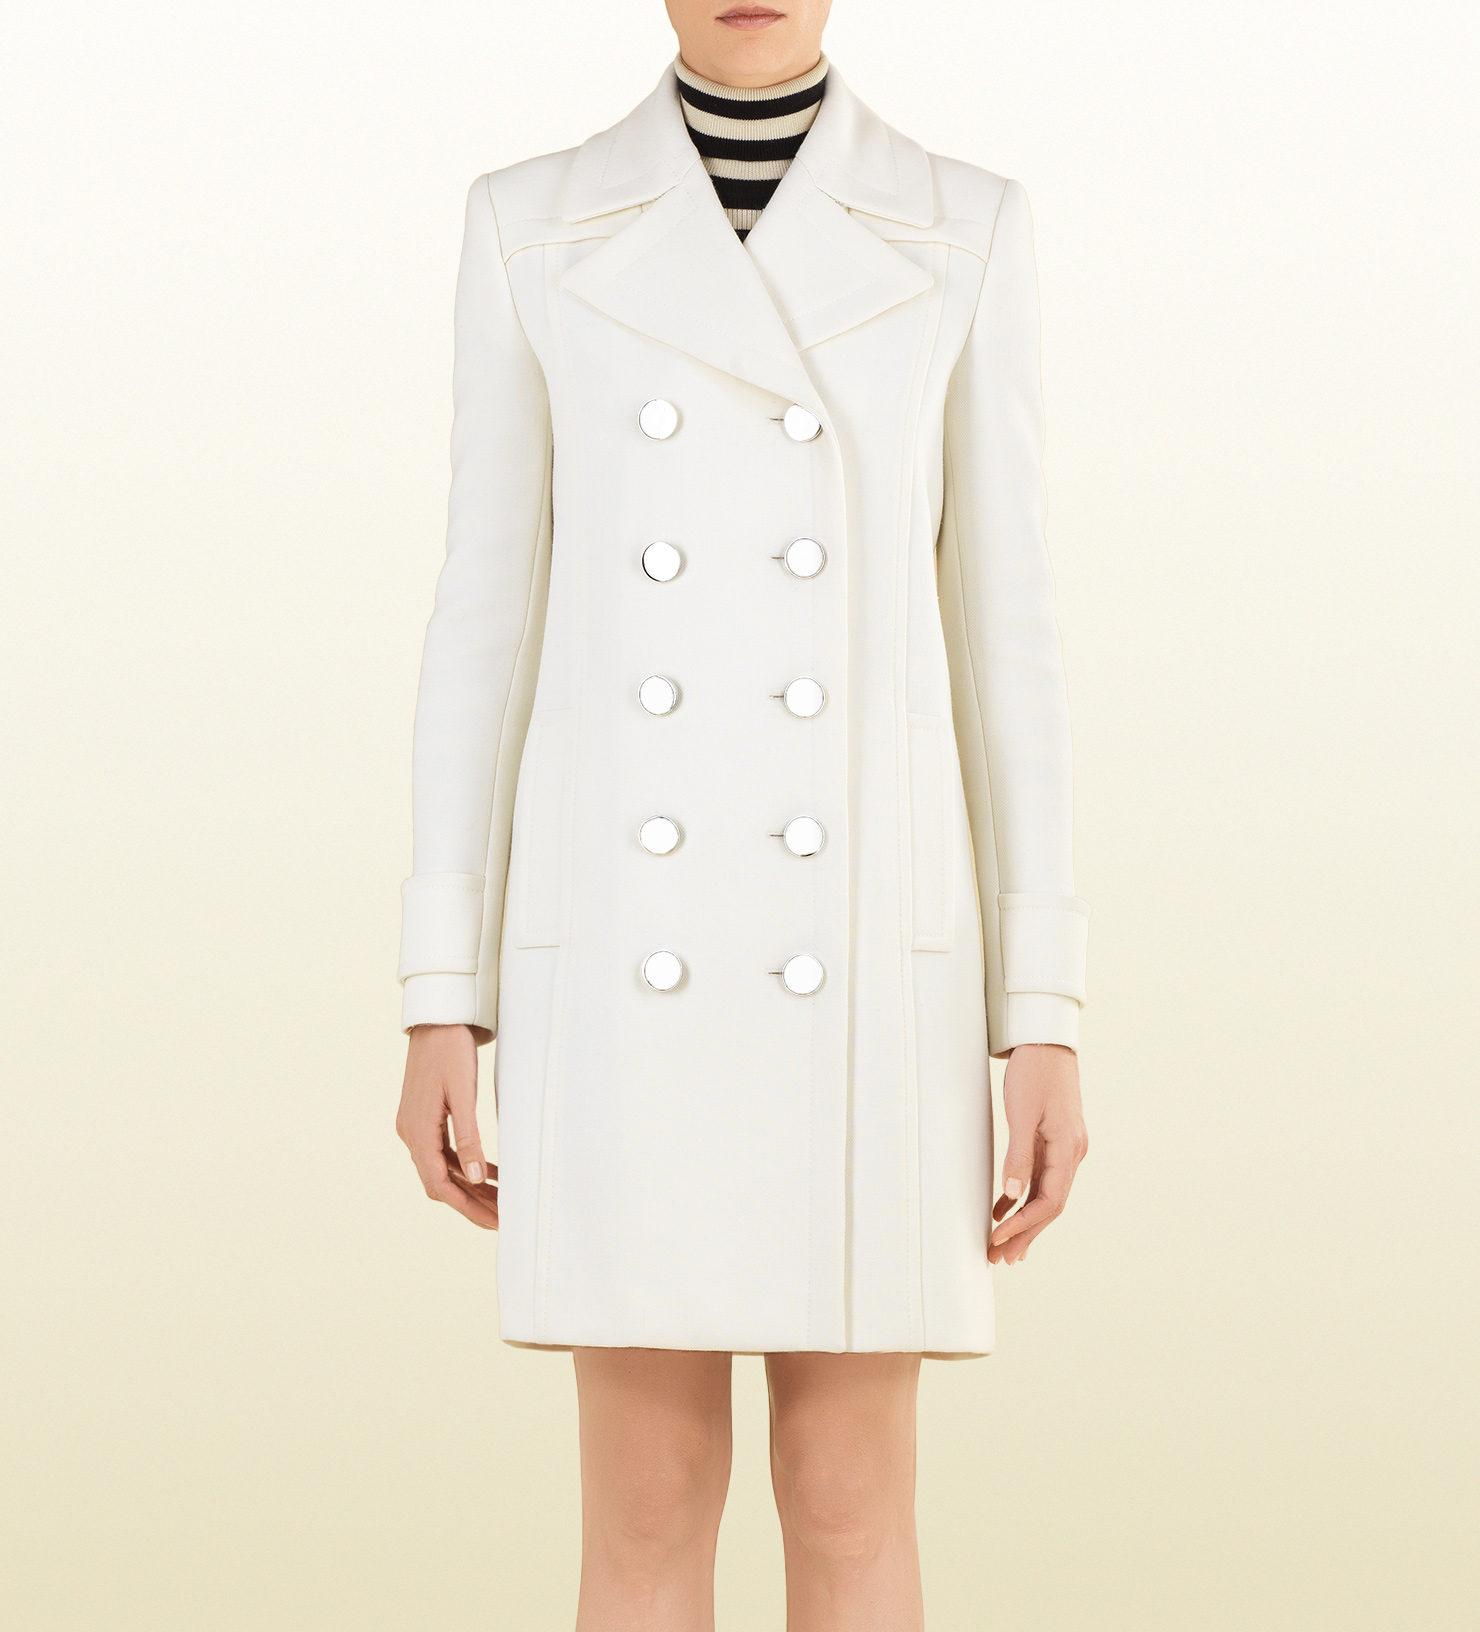 3460d5697 Gucci White Wool Coat in White - Lyst